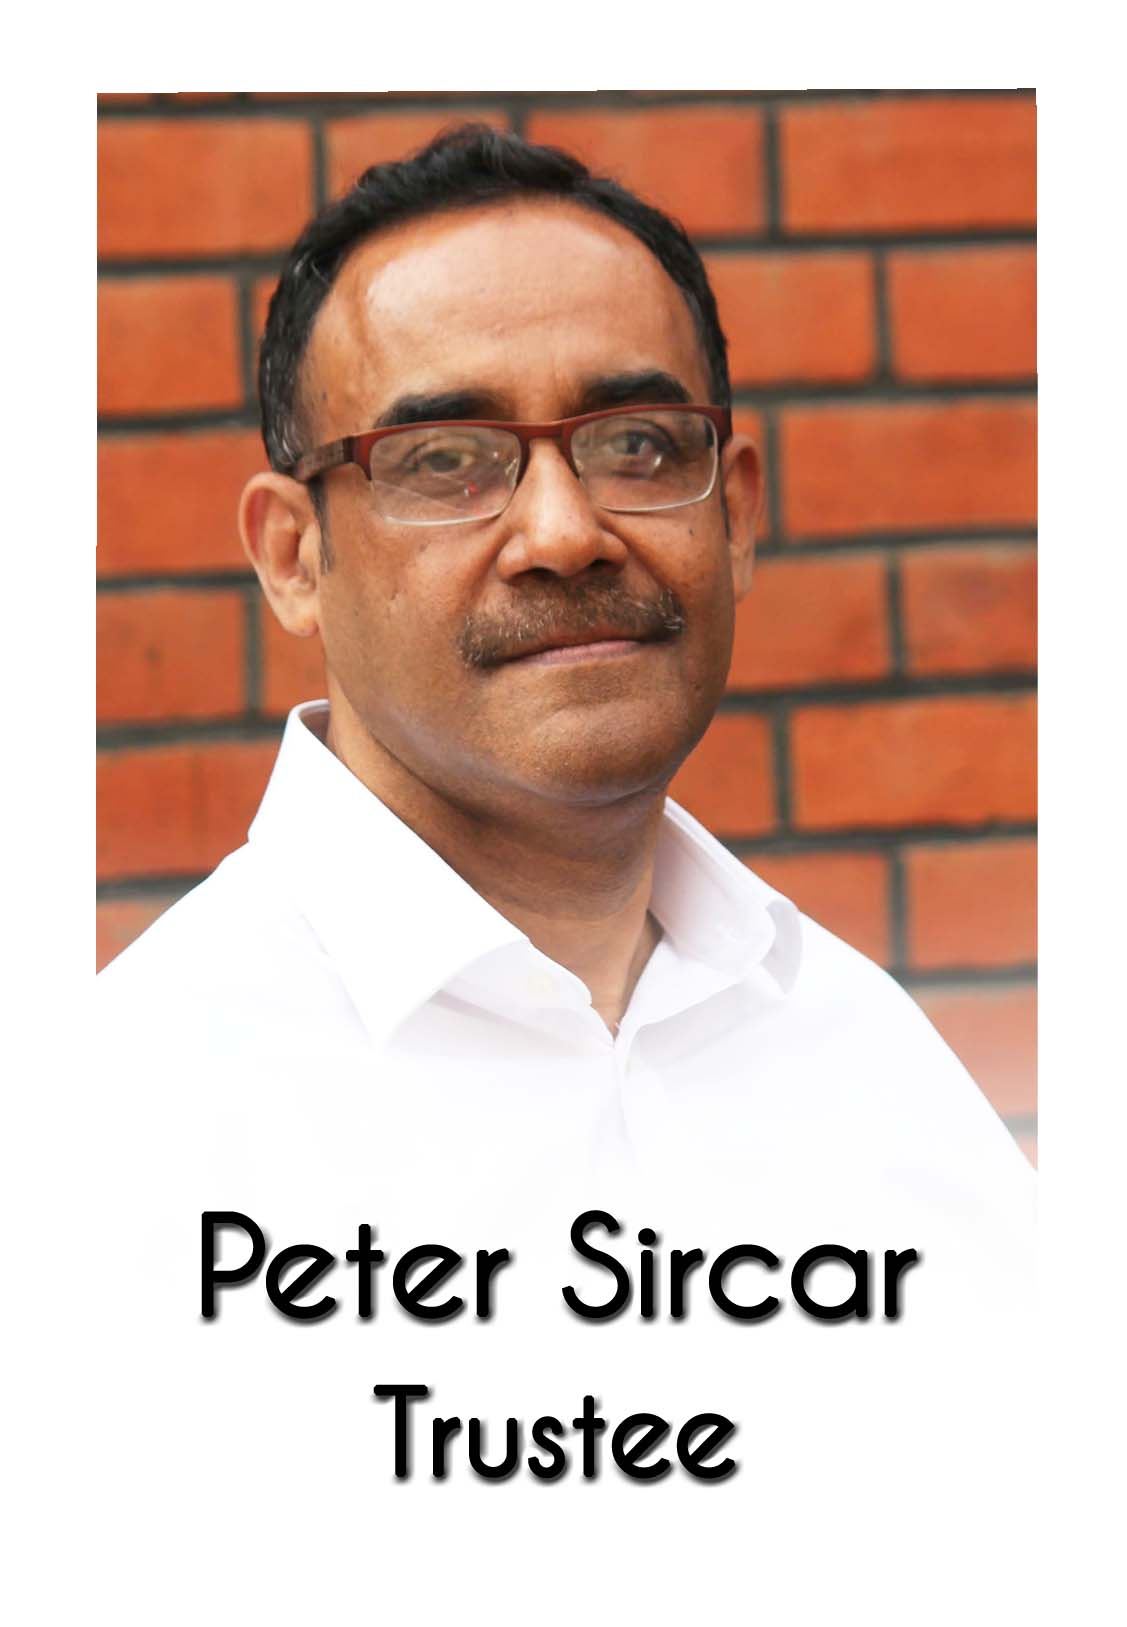 Peter Sircar labelled